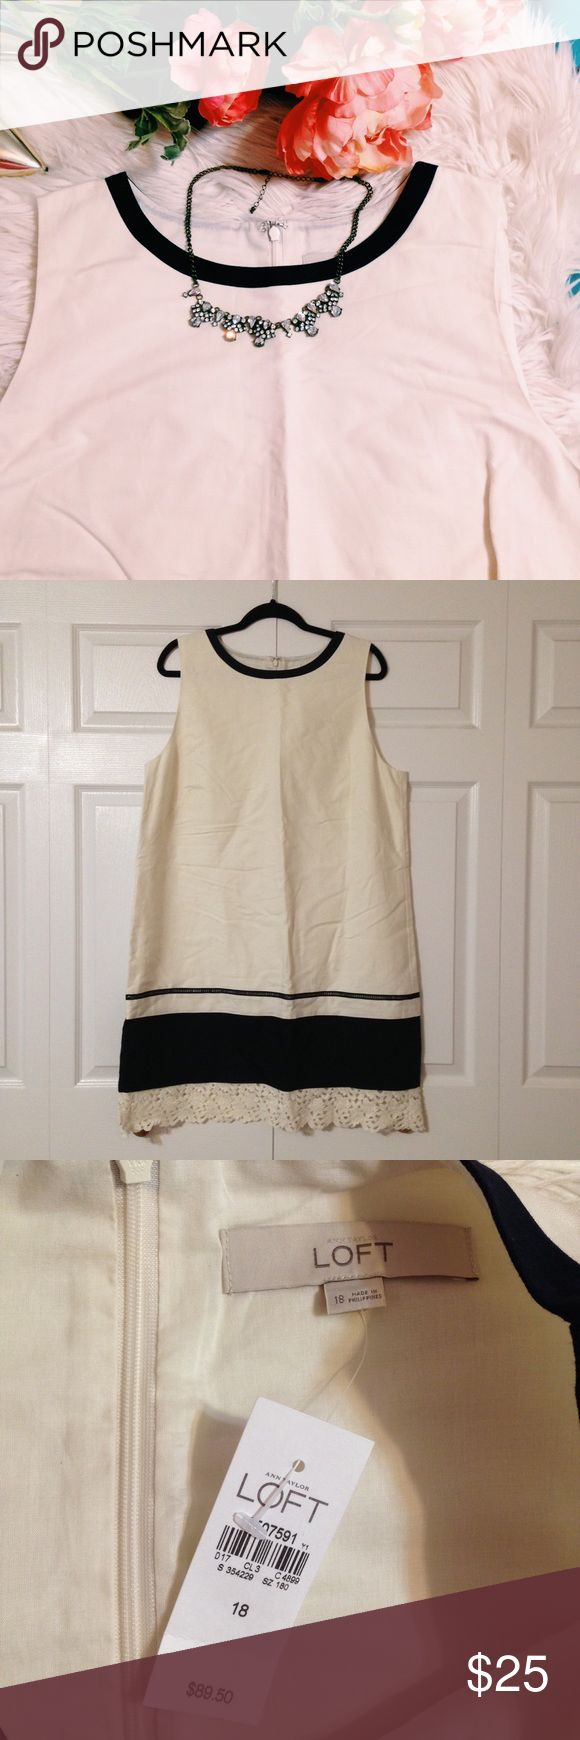 LOFT NWT LACE TRIM DRESS NEW WITH TAGS NEVER WORN! GORGEOUS white dress with navy trim along neckline and bottom- SO PRETTY ON! Size 18 LOFT Dresses Midi